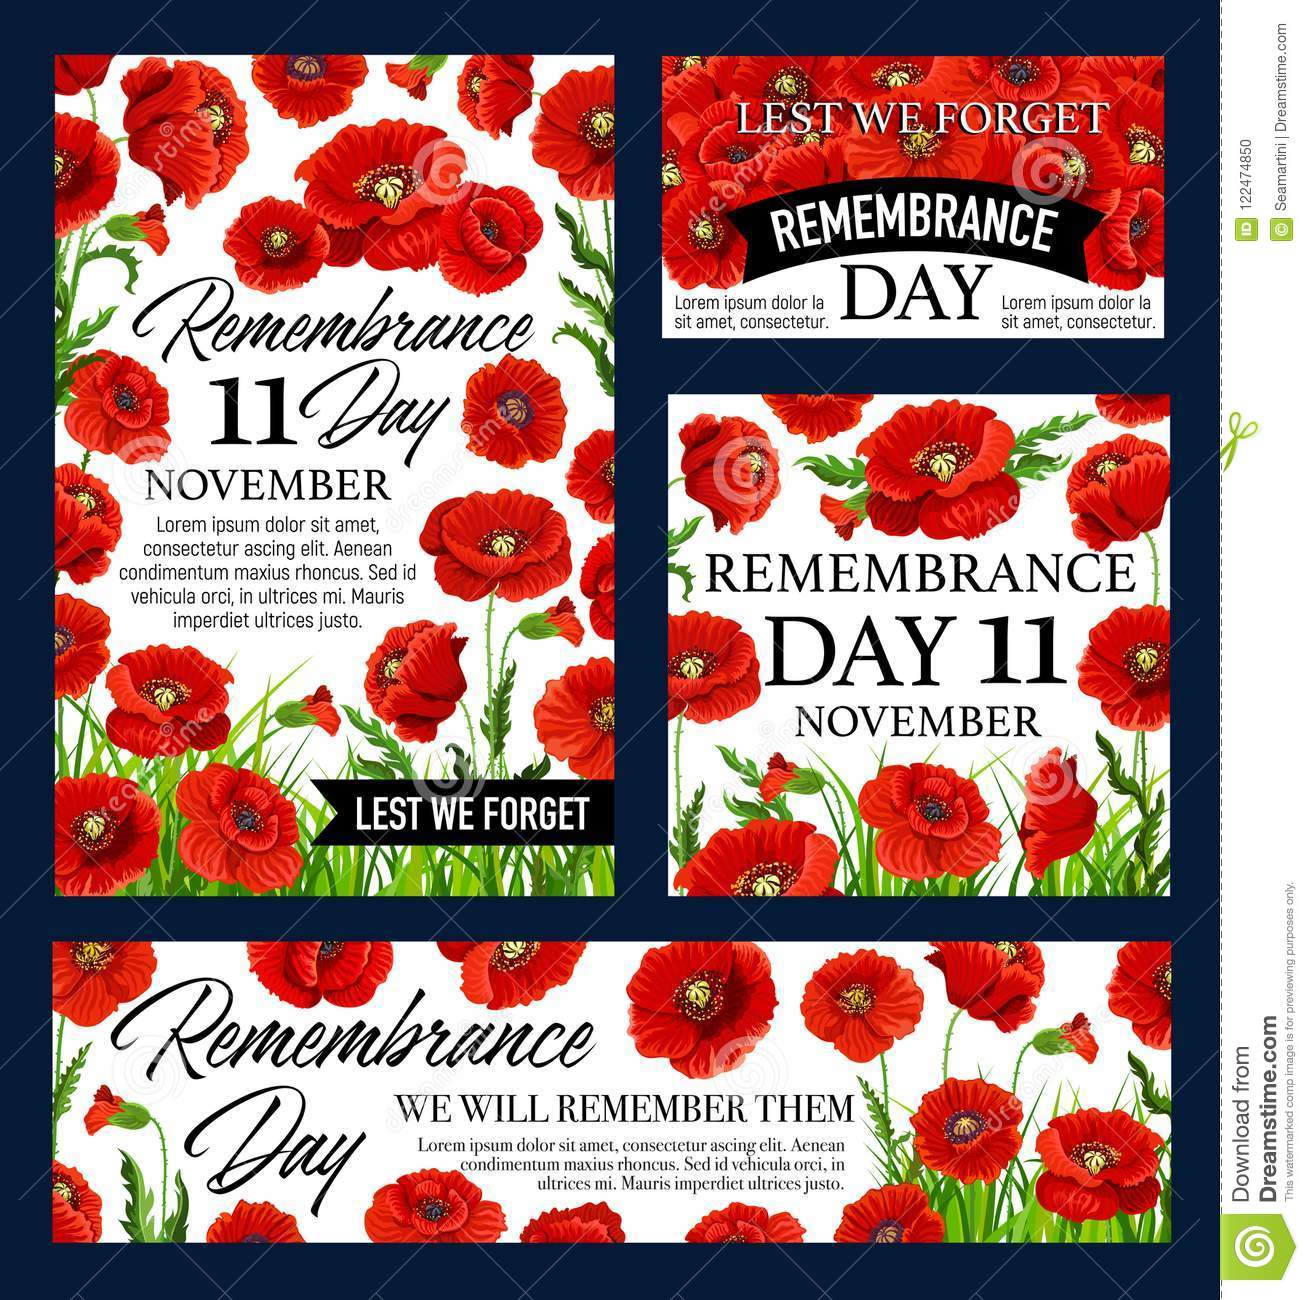 Red poppy flower remembrance day memorial banner stock vector download red poppy flower remembrance day memorial banner stock vector illustration of lest history mightylinksfo